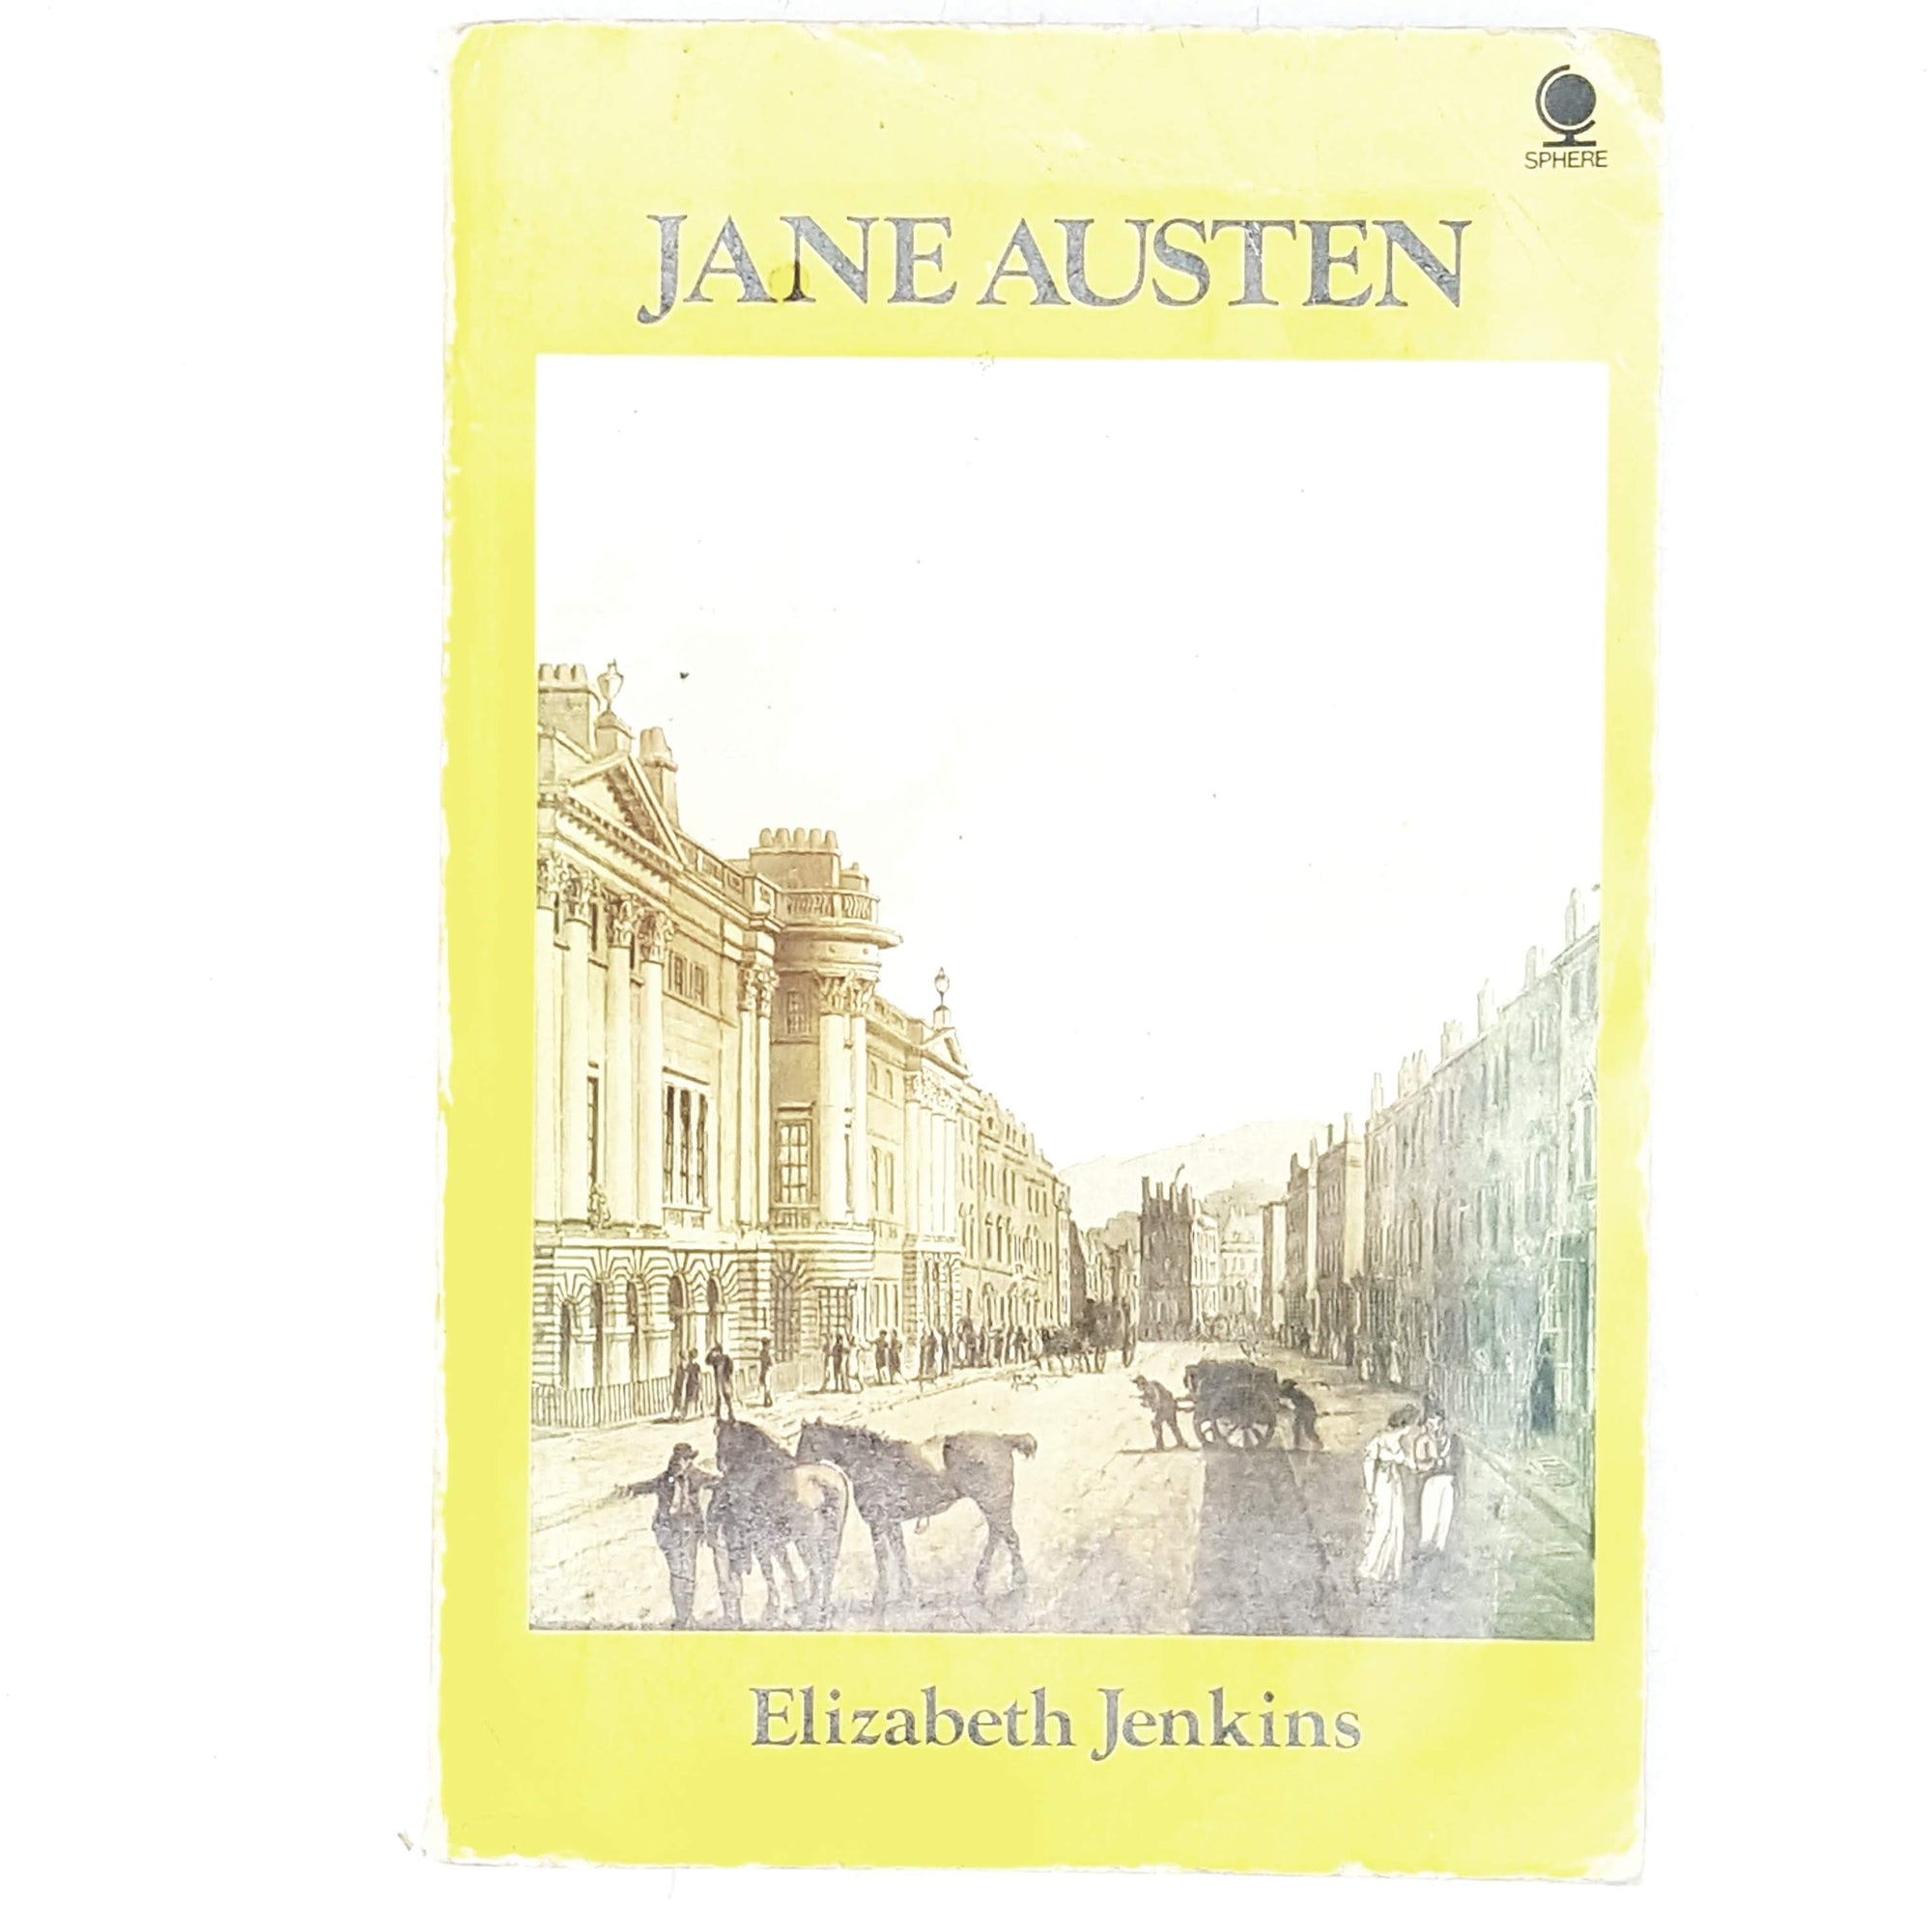 First Edition Jane Austen Biography by Elizabeth Jenkins